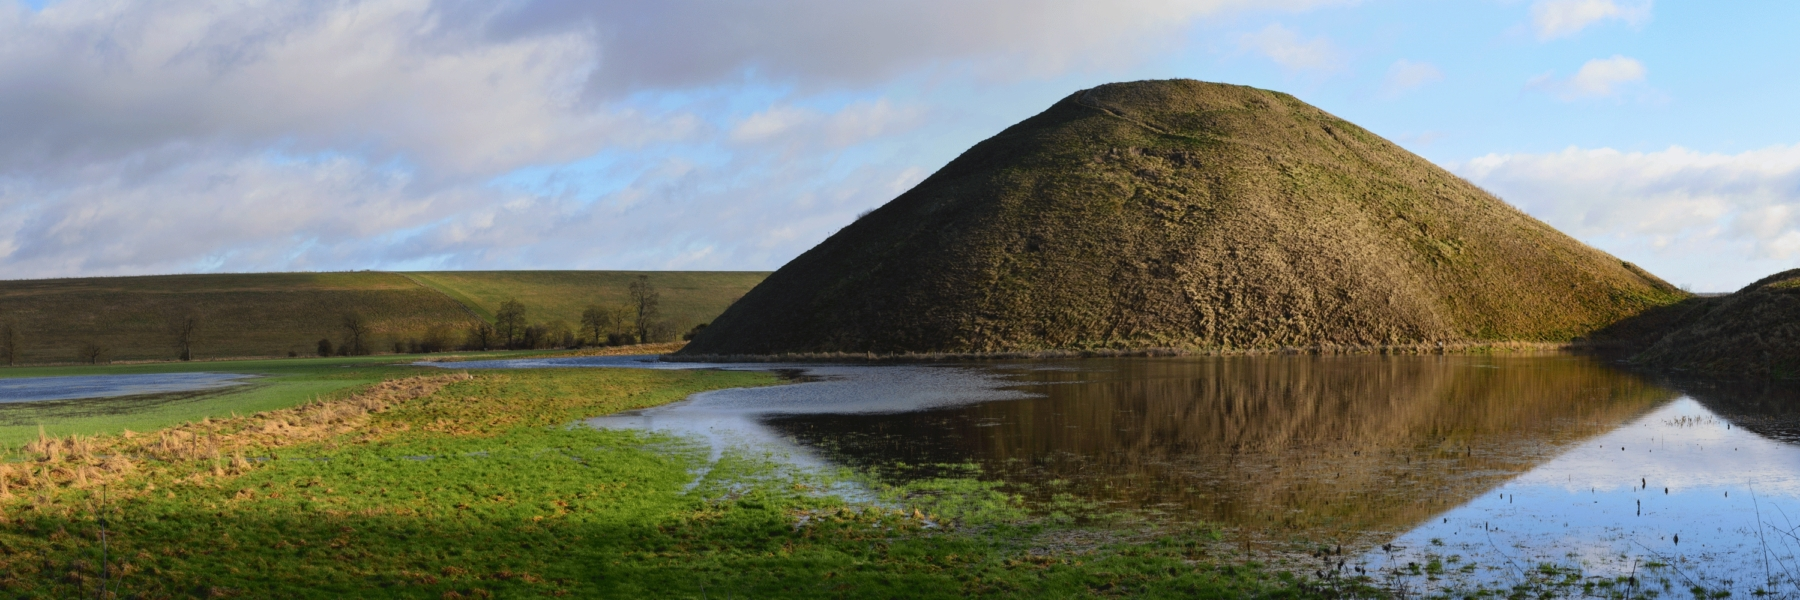 Photo of Silbury Hill Neolithic mound. It stands 30 metres high and 160 metres wide, and comprises half a million tonnes of chalk. It is a huge non-megalithic accomplishment.